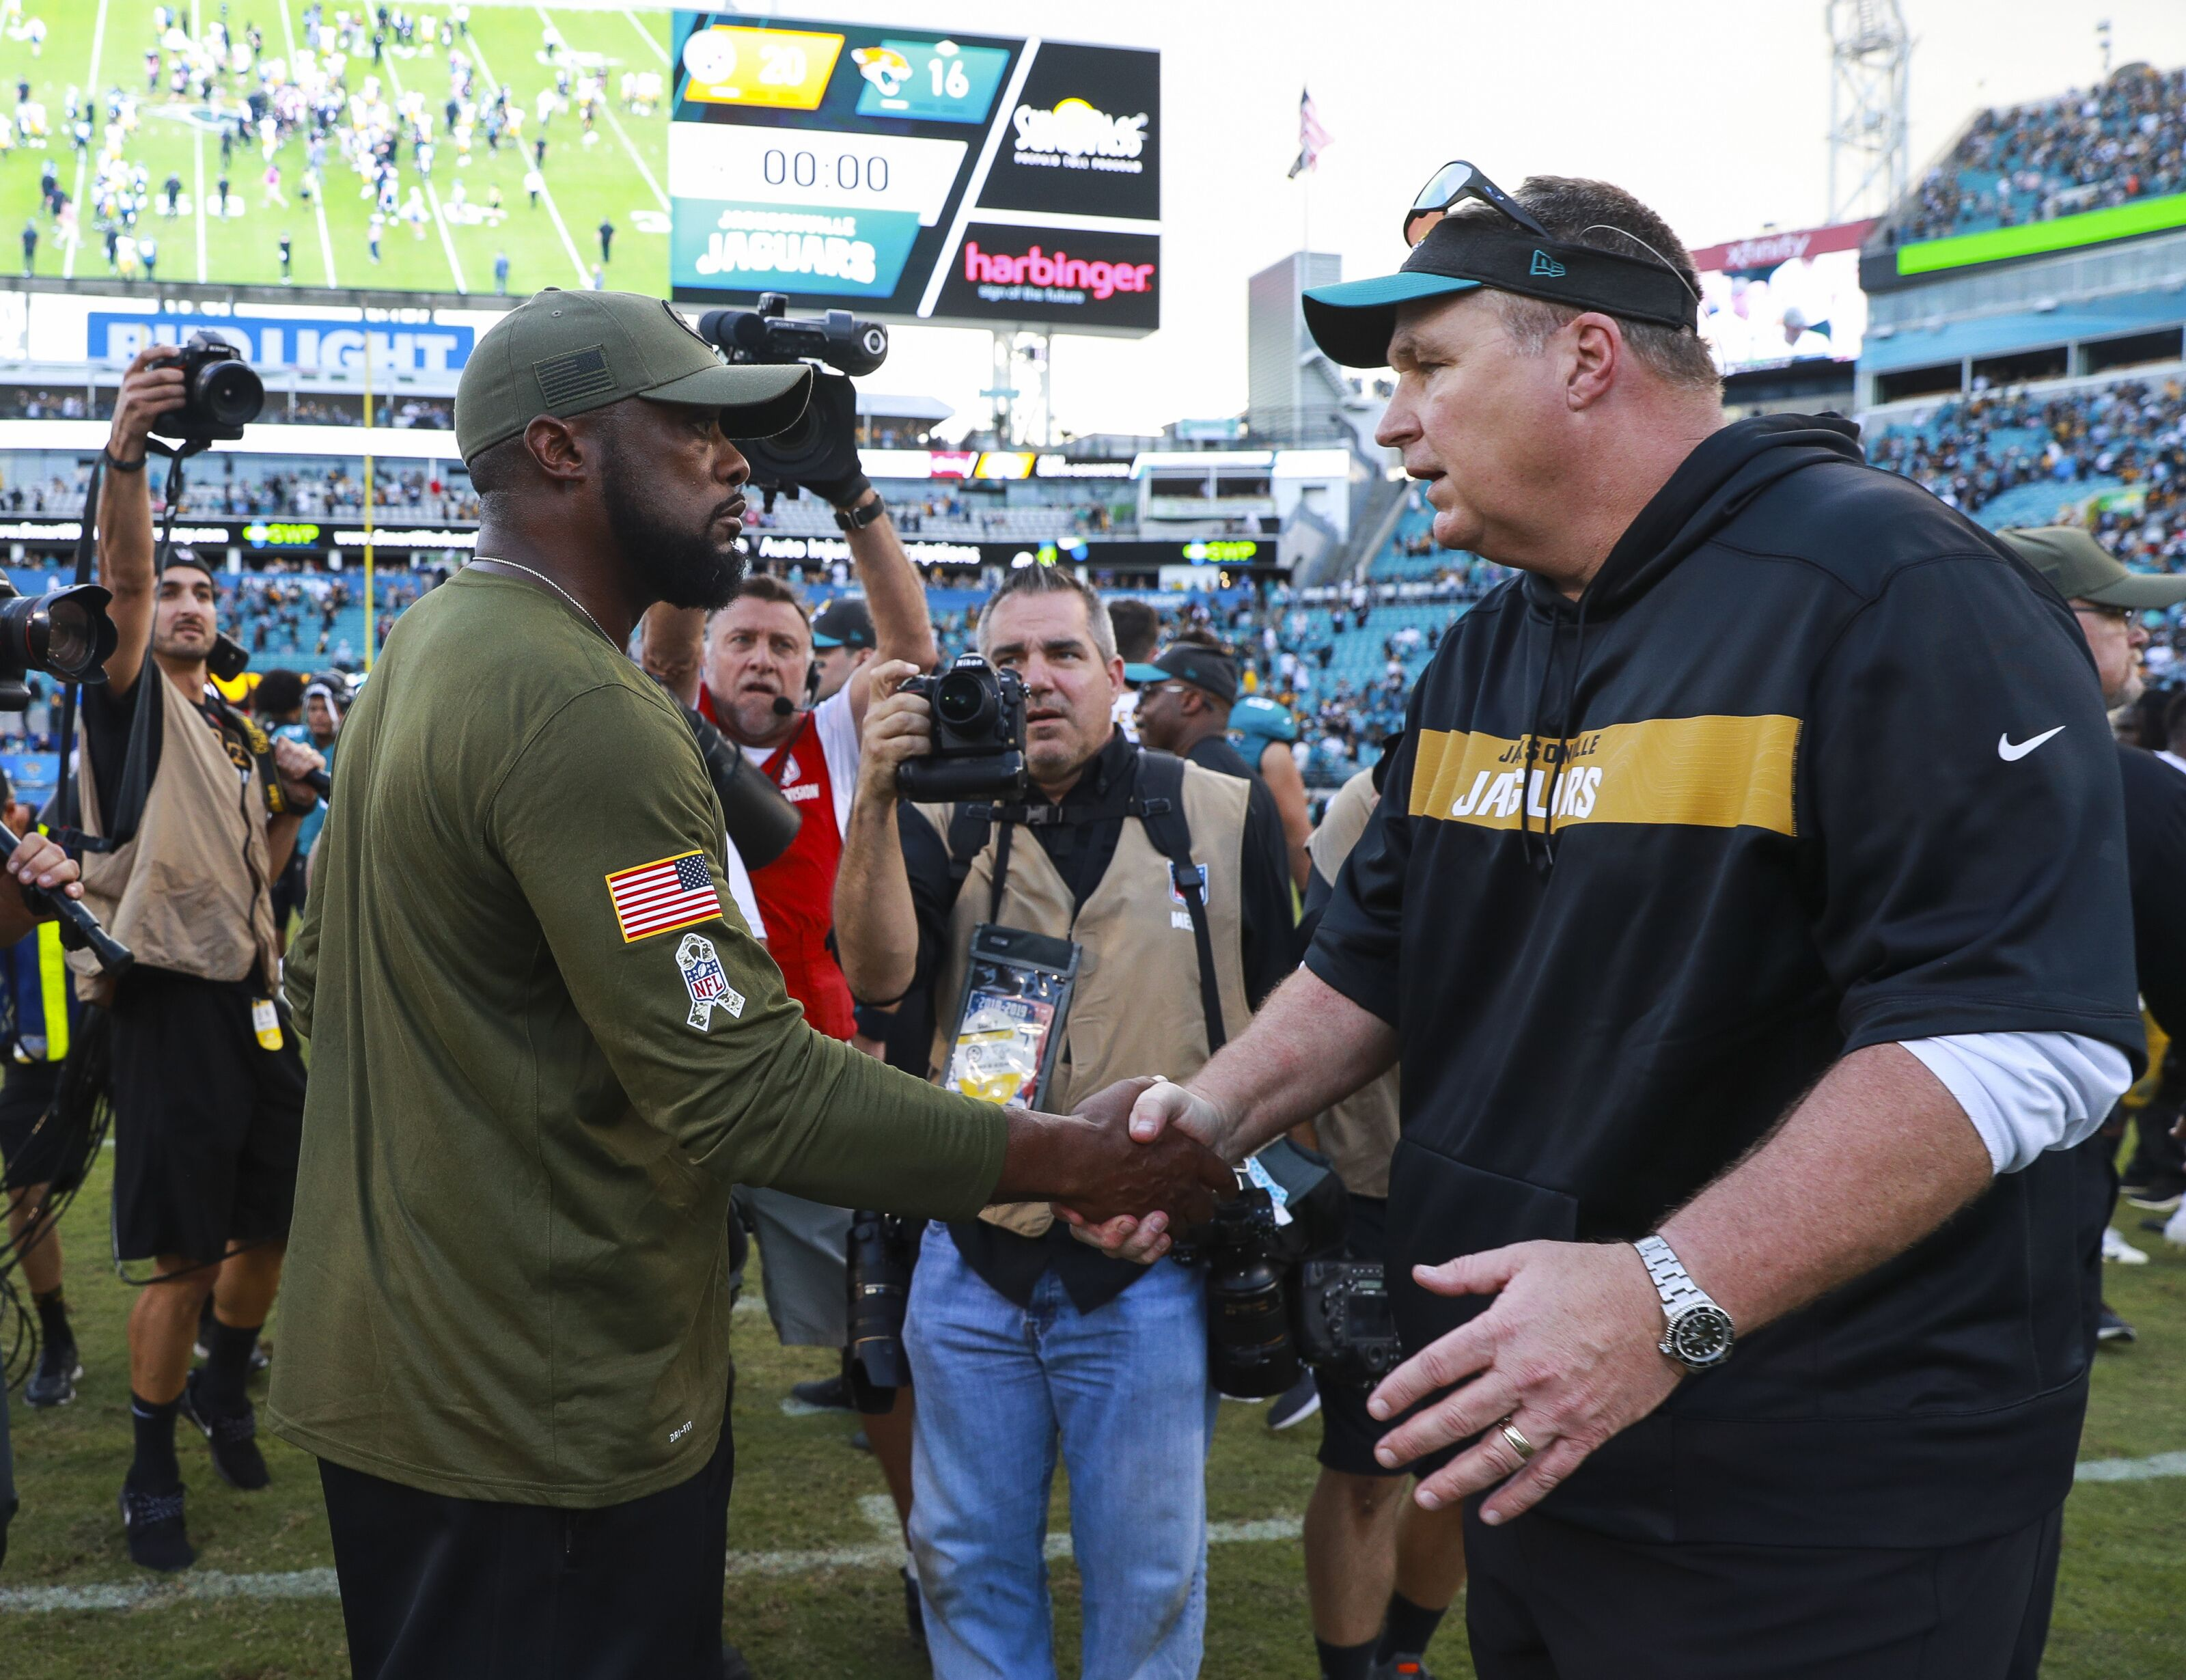 The Jacksonville Jaguars lost a heartbreaker to the Pittsburg Steelers